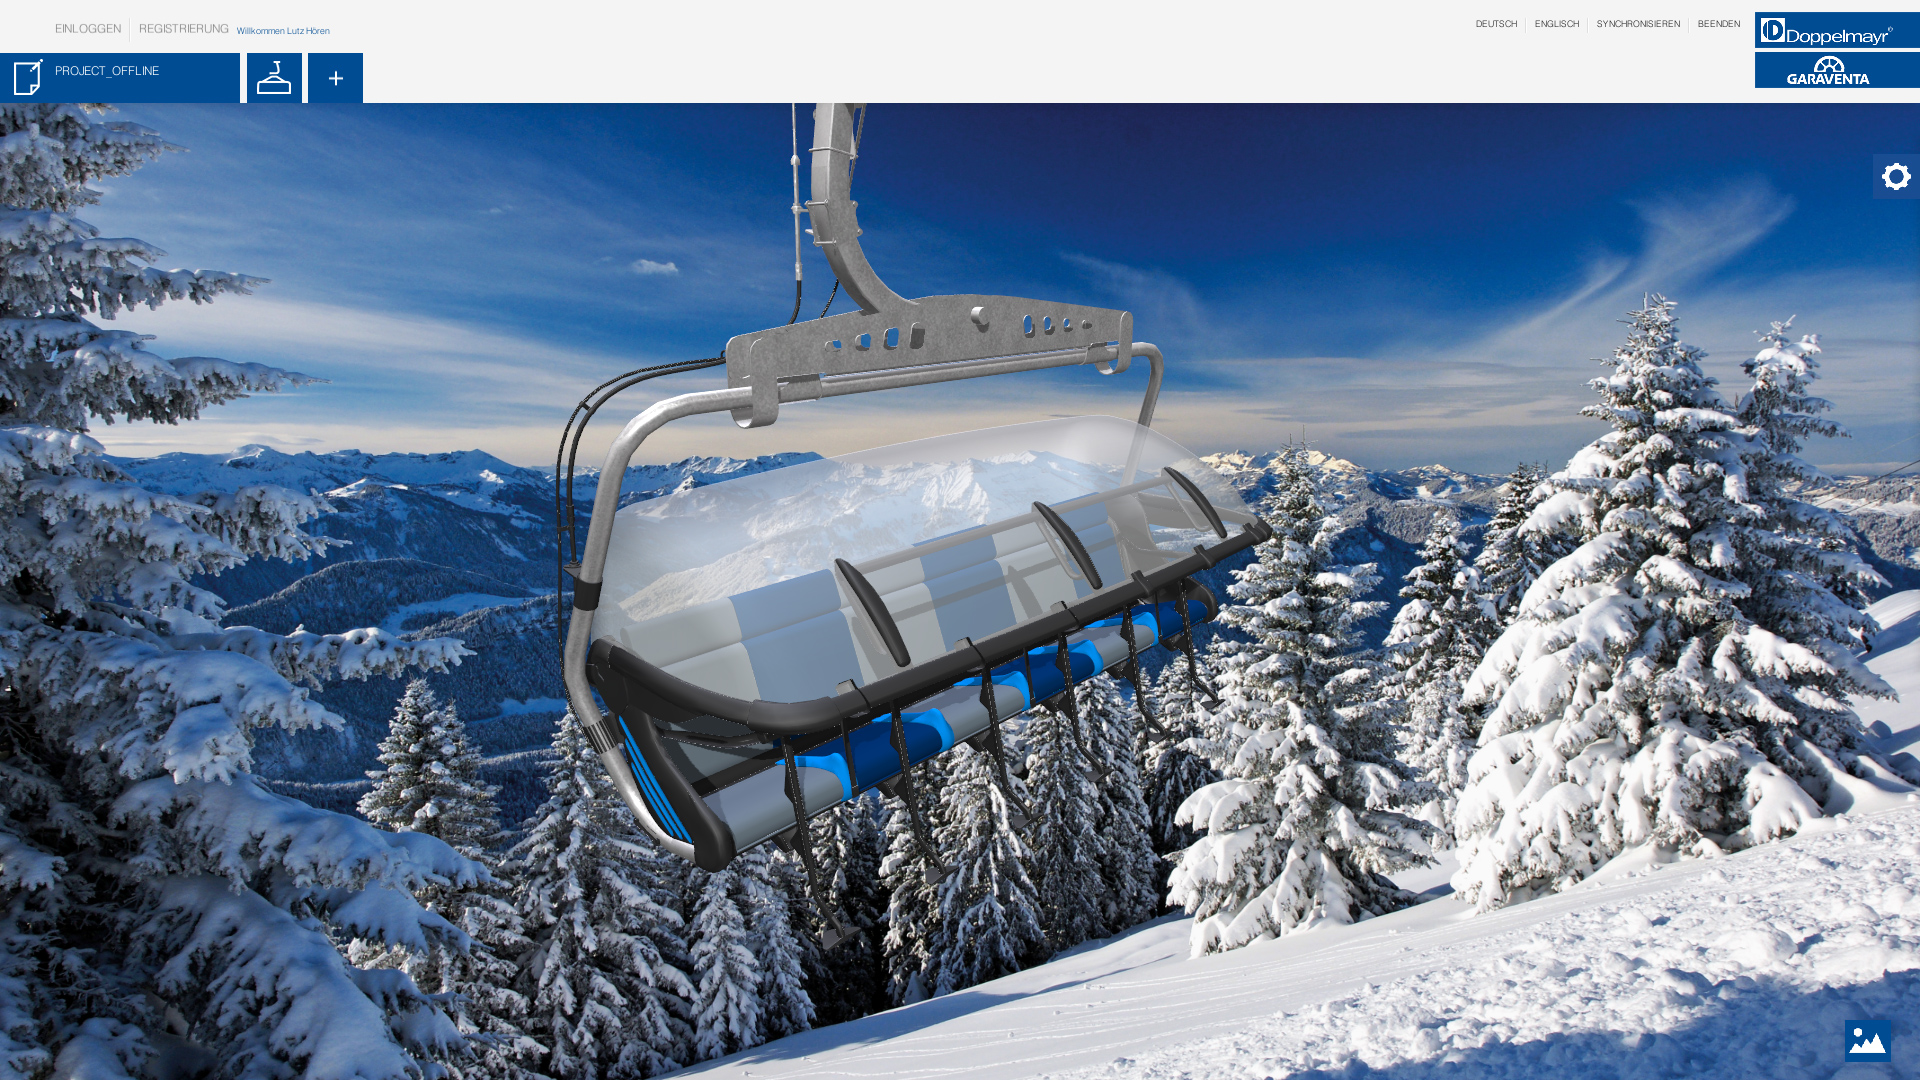 doppelmayr unity ropeway configurator chairlift with winter background